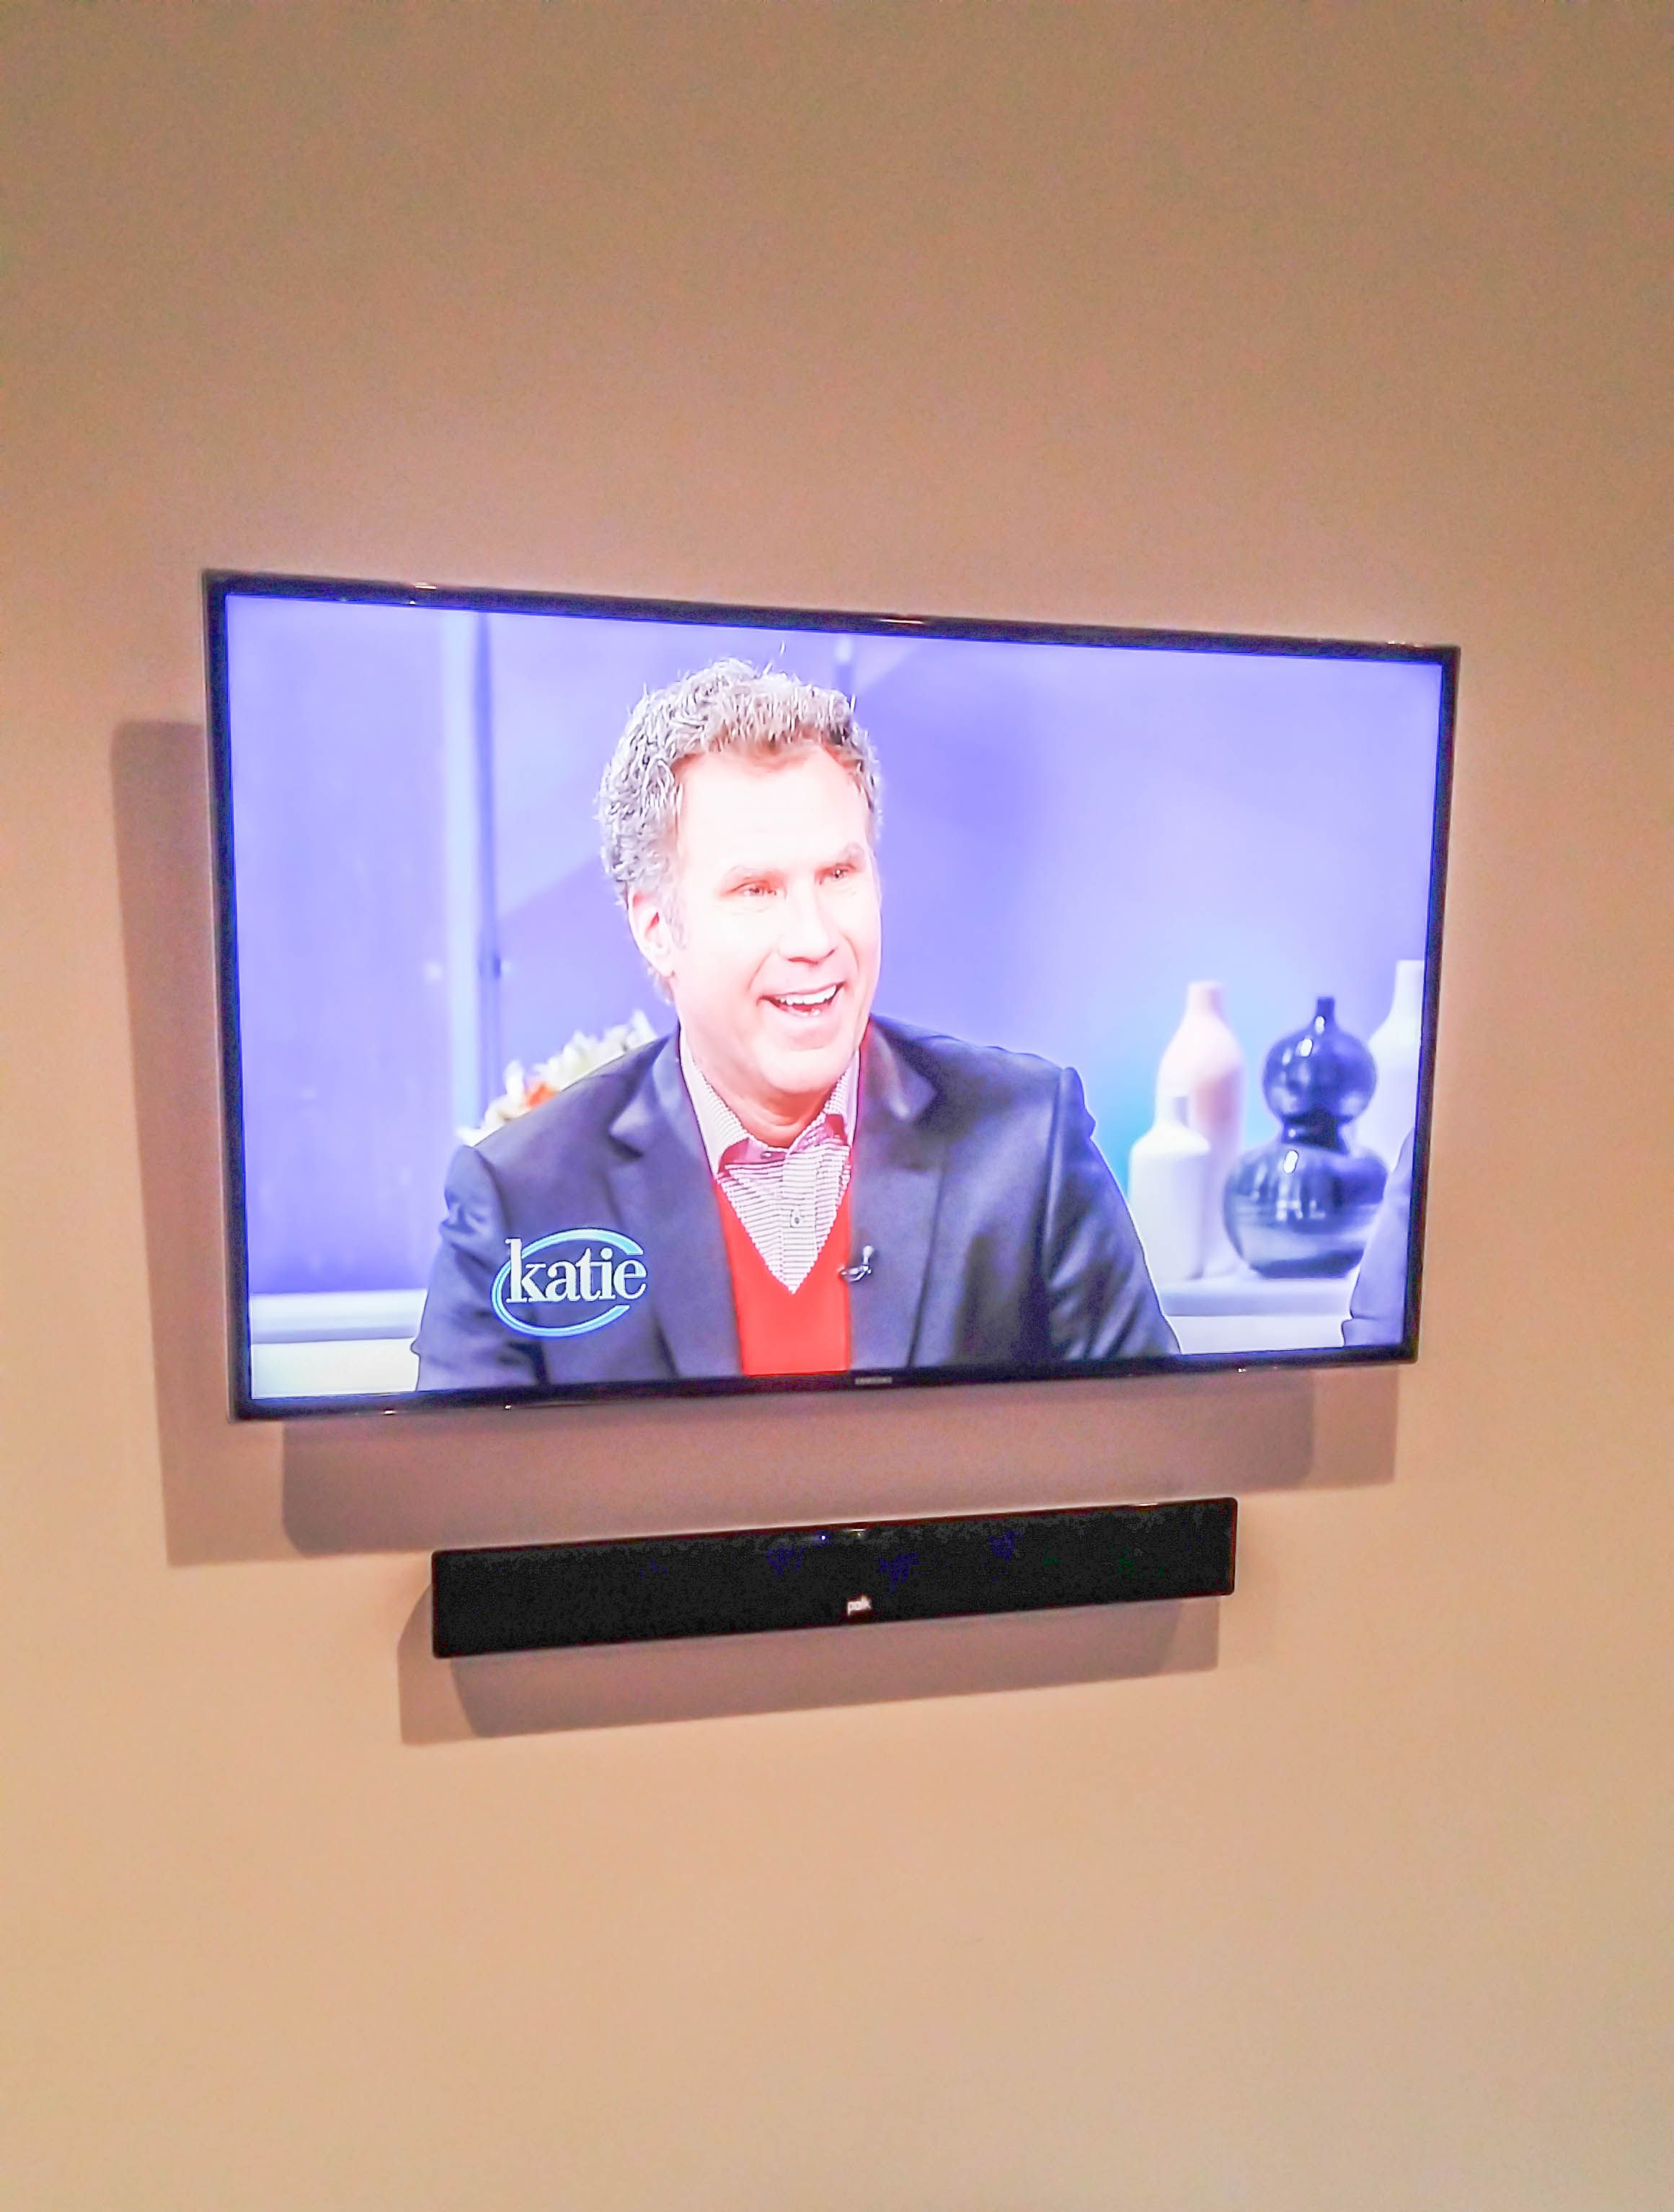 Samsung Un50f6400 Led 3d Smart Tv Wall Mounted Above The Polk